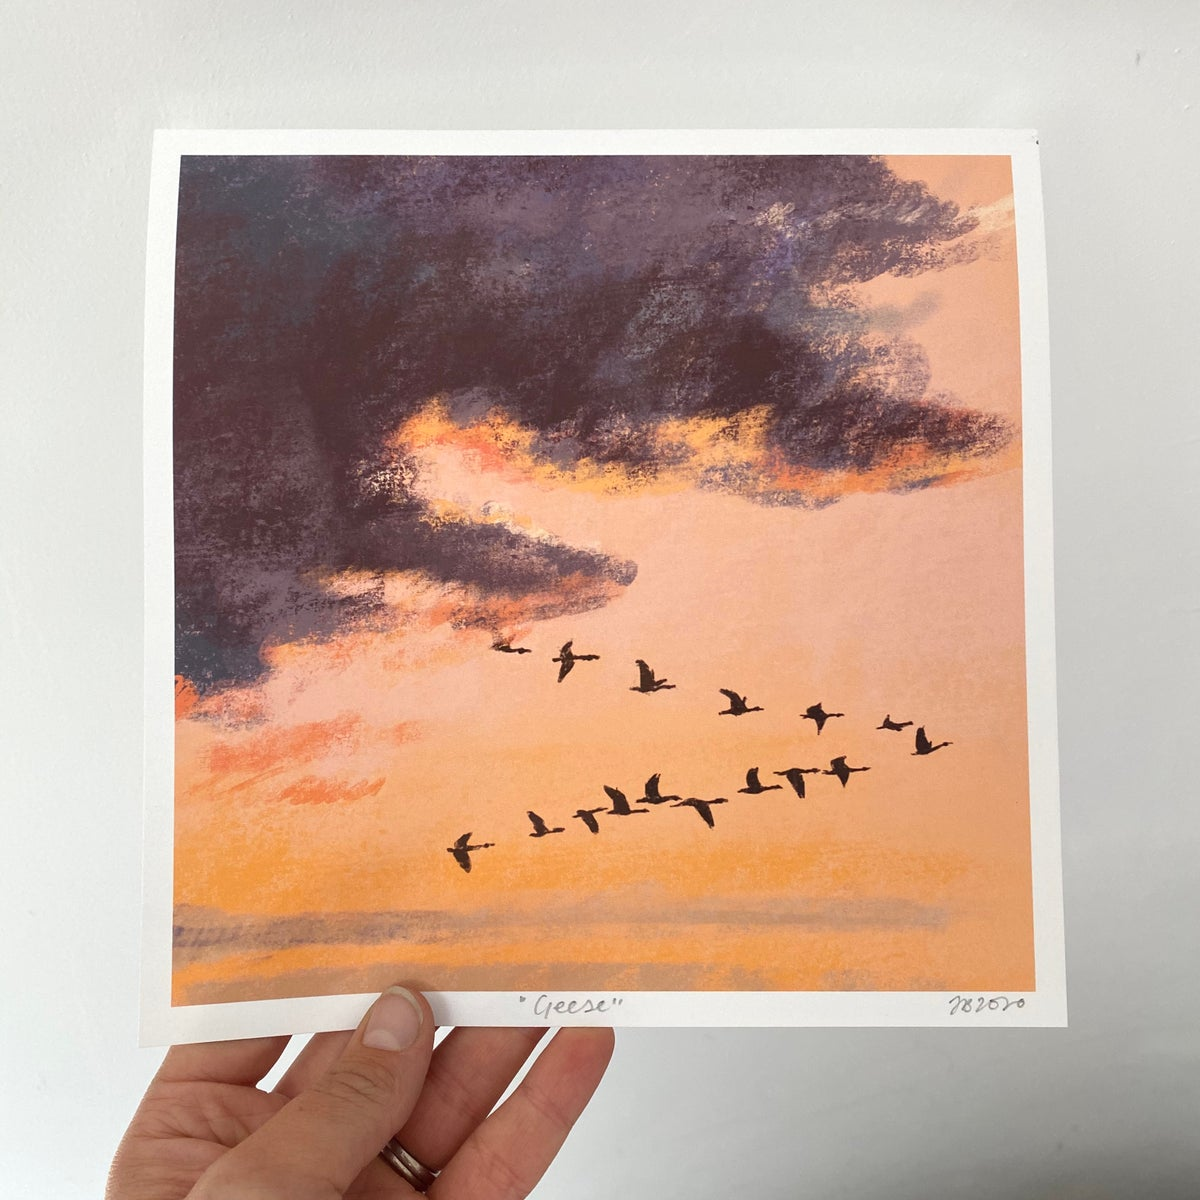 Image of 'Geese' archive quality print